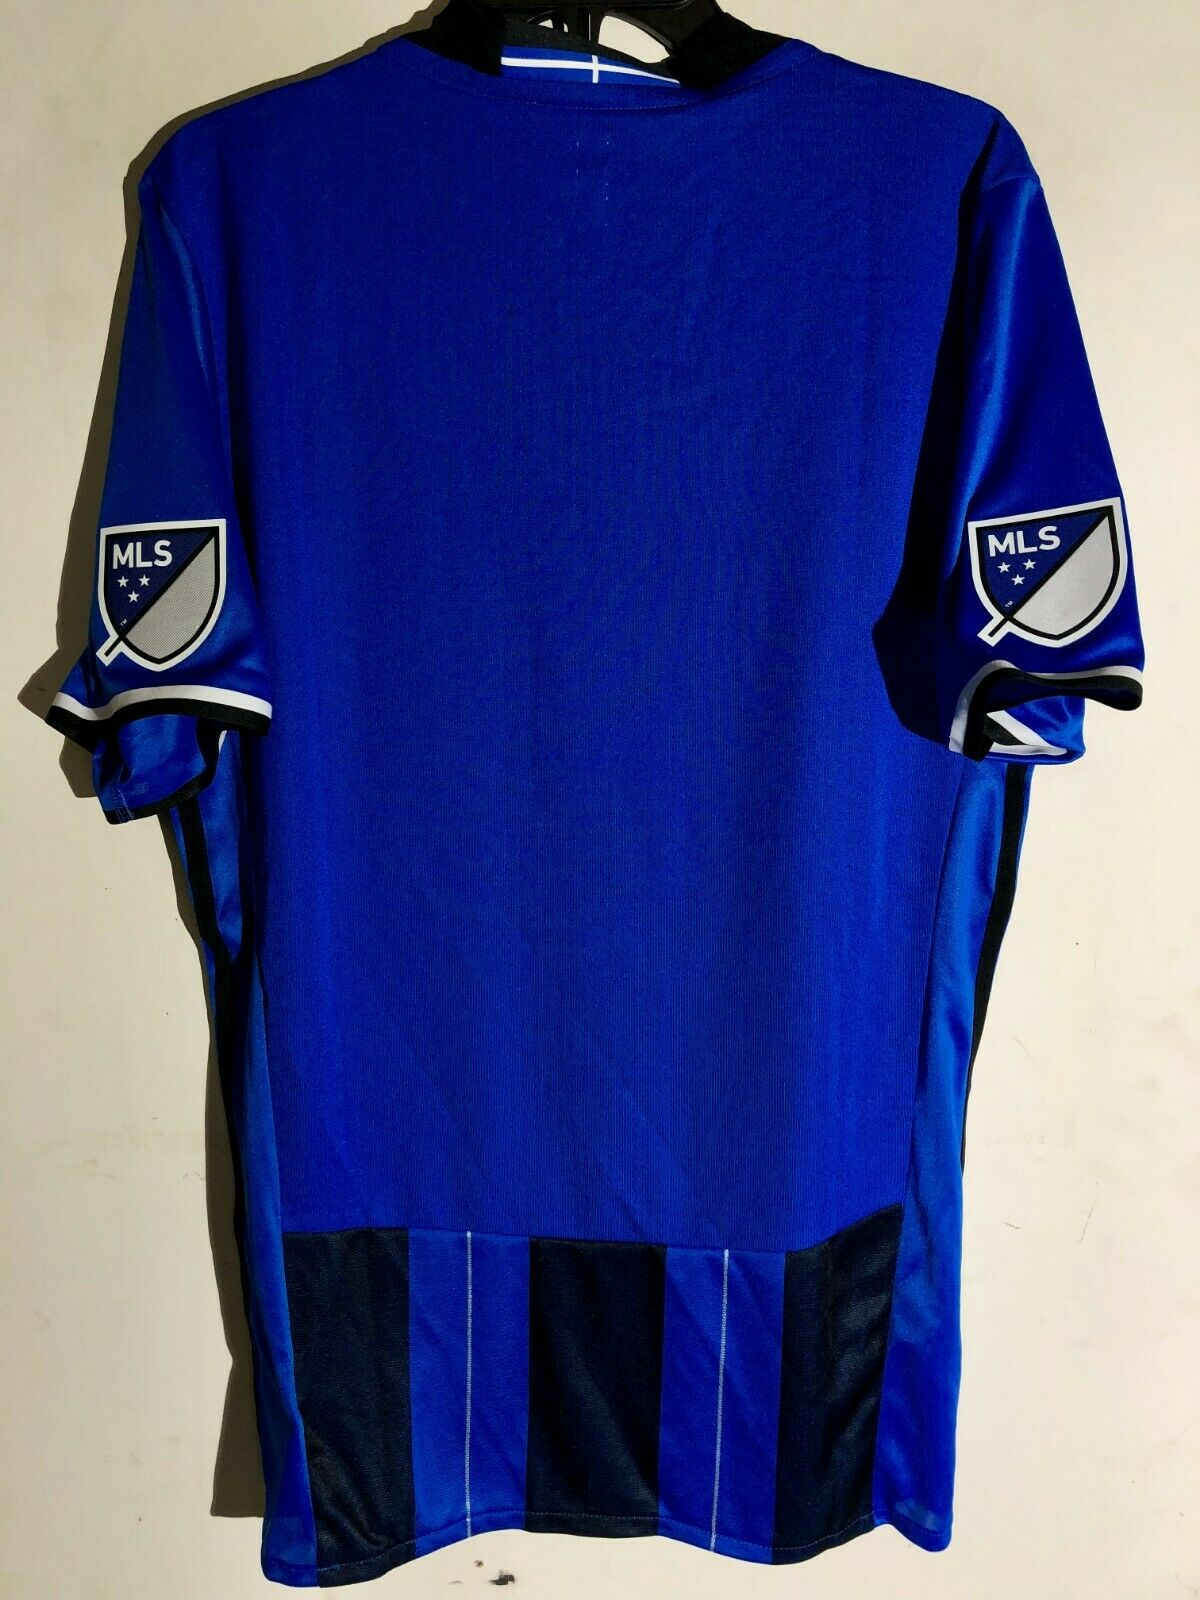 reputable site c1f81 a5a7e Adidas Authentic MLS Jersey Montreal Impact Team BLUE sz L